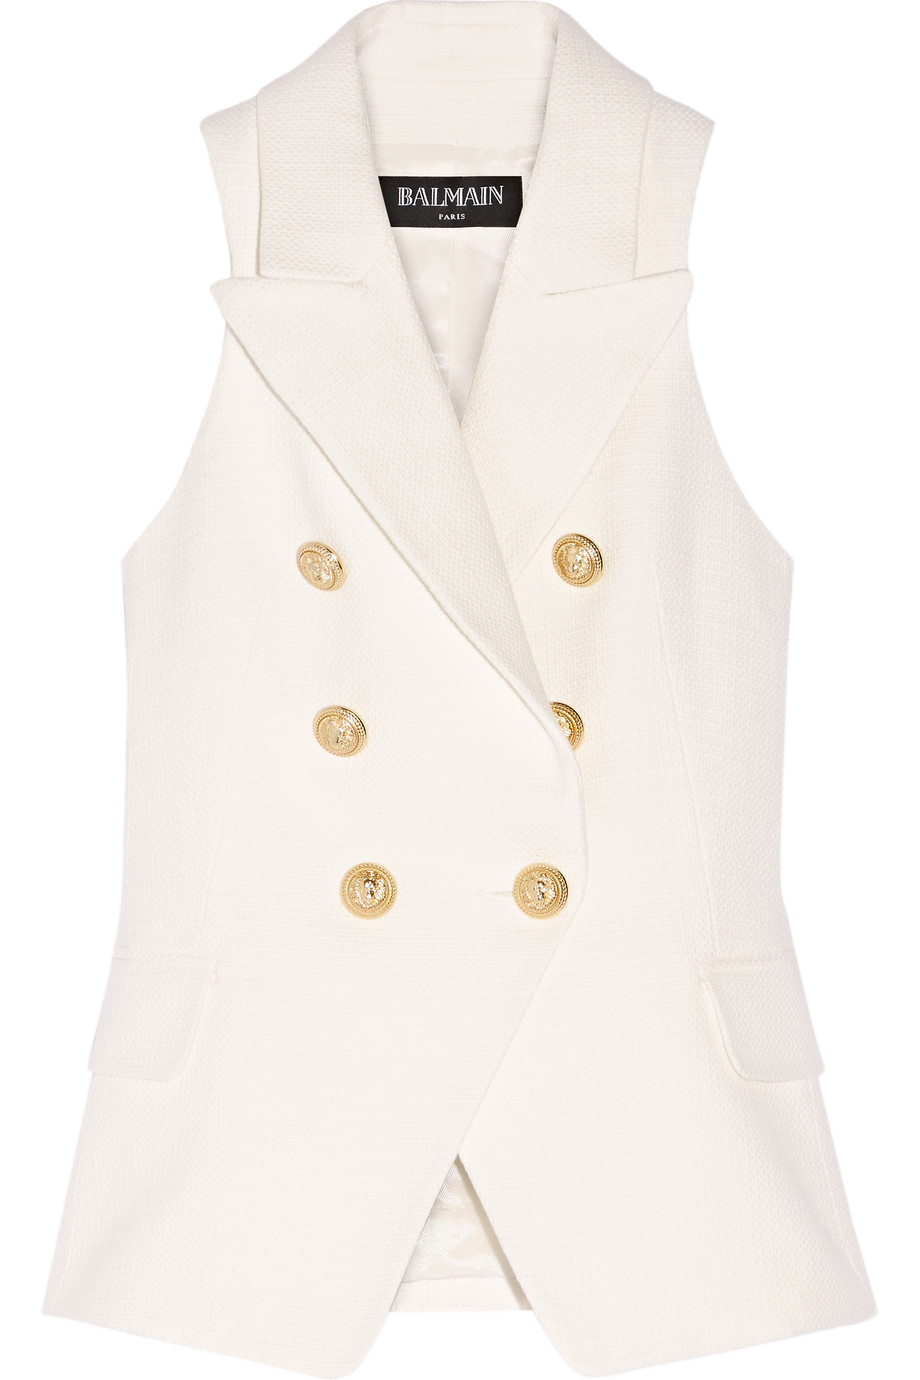 https-__www.theoutnet.com_en-US_Shop_Product_Balmain_Double-breasted-basketweave-cotton-vest_650712_clipped_rev_1.png